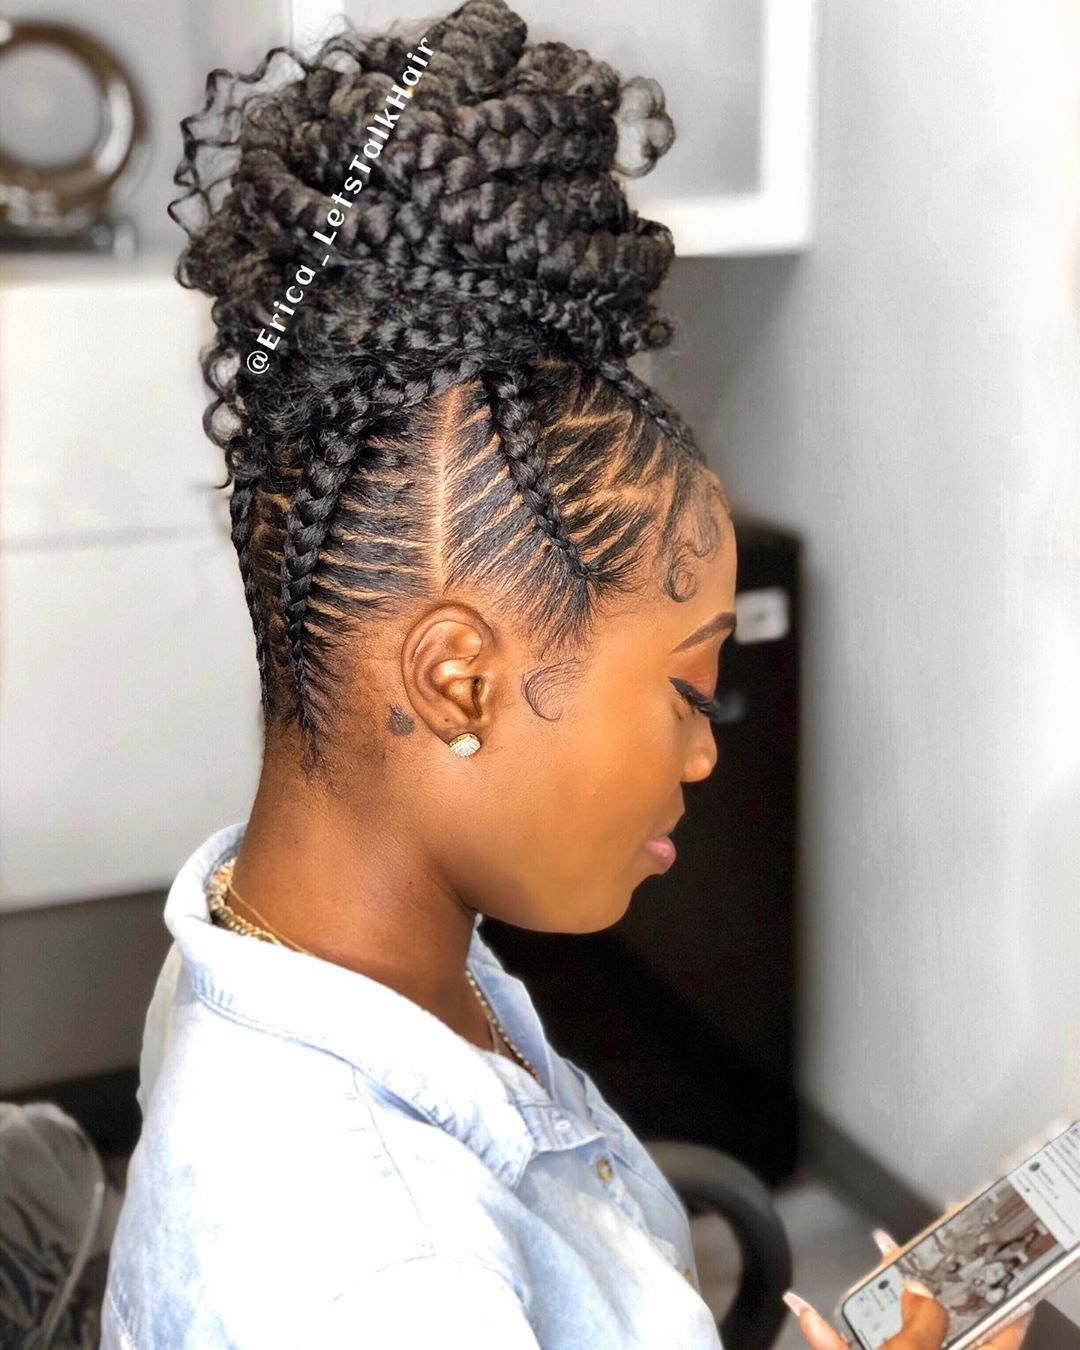 Feeding Cornrows Cornrows Braids Braiding Braids Into A Bun Located In Baltimore Text Call 44 Natural Hair Styles Hair Styles African Braids Hairstyles